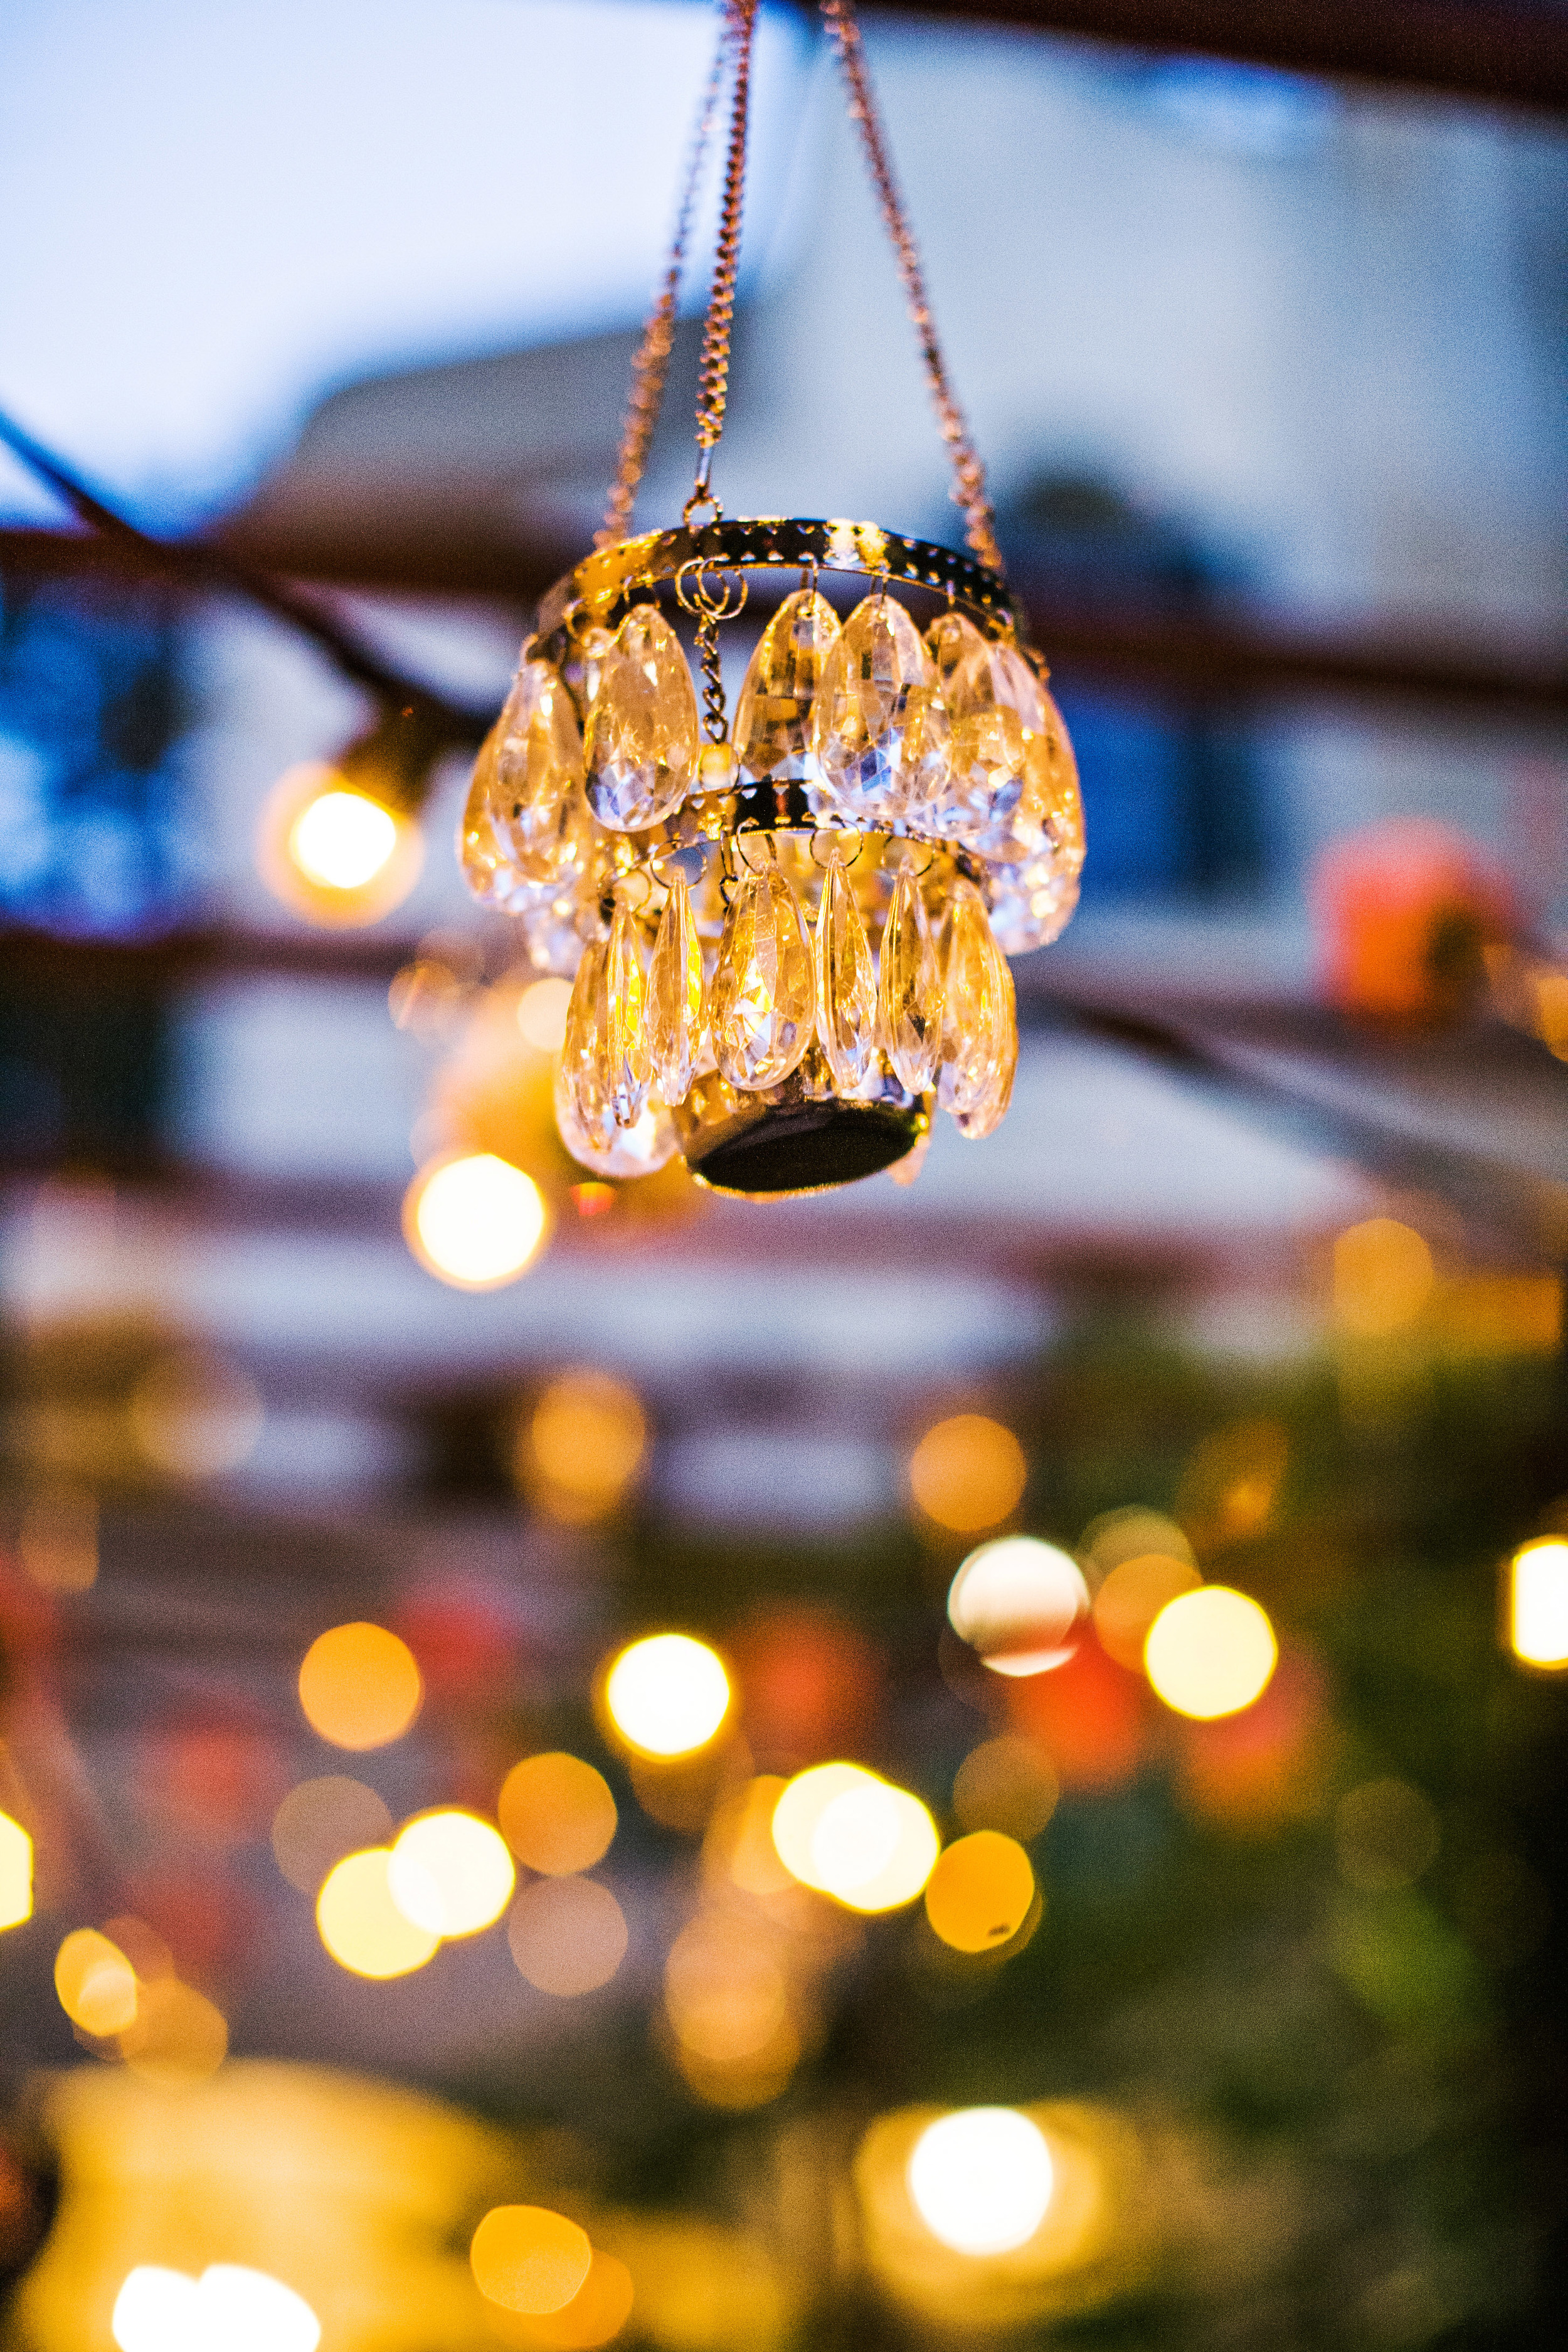 26. RS - hanging flowers, summer wedding, peach & coral wedding, napa wedding, crystal chandalier candles, hanging candles.jpg